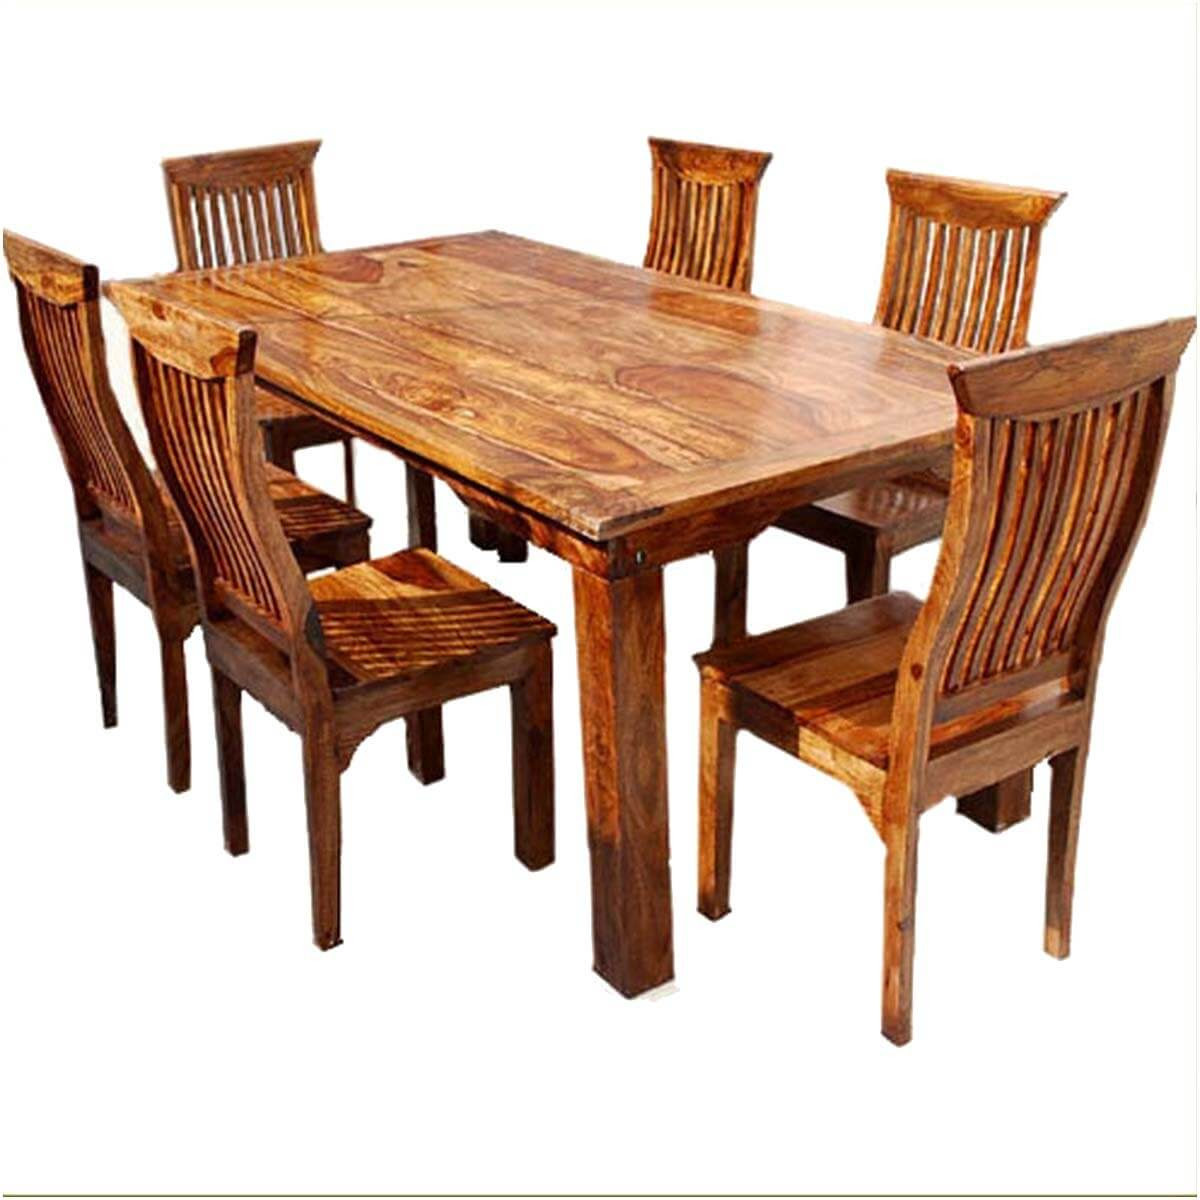 Dallas Ranch Solid Wood Rustic Dining Table Chairs \u0026 Hutch Set